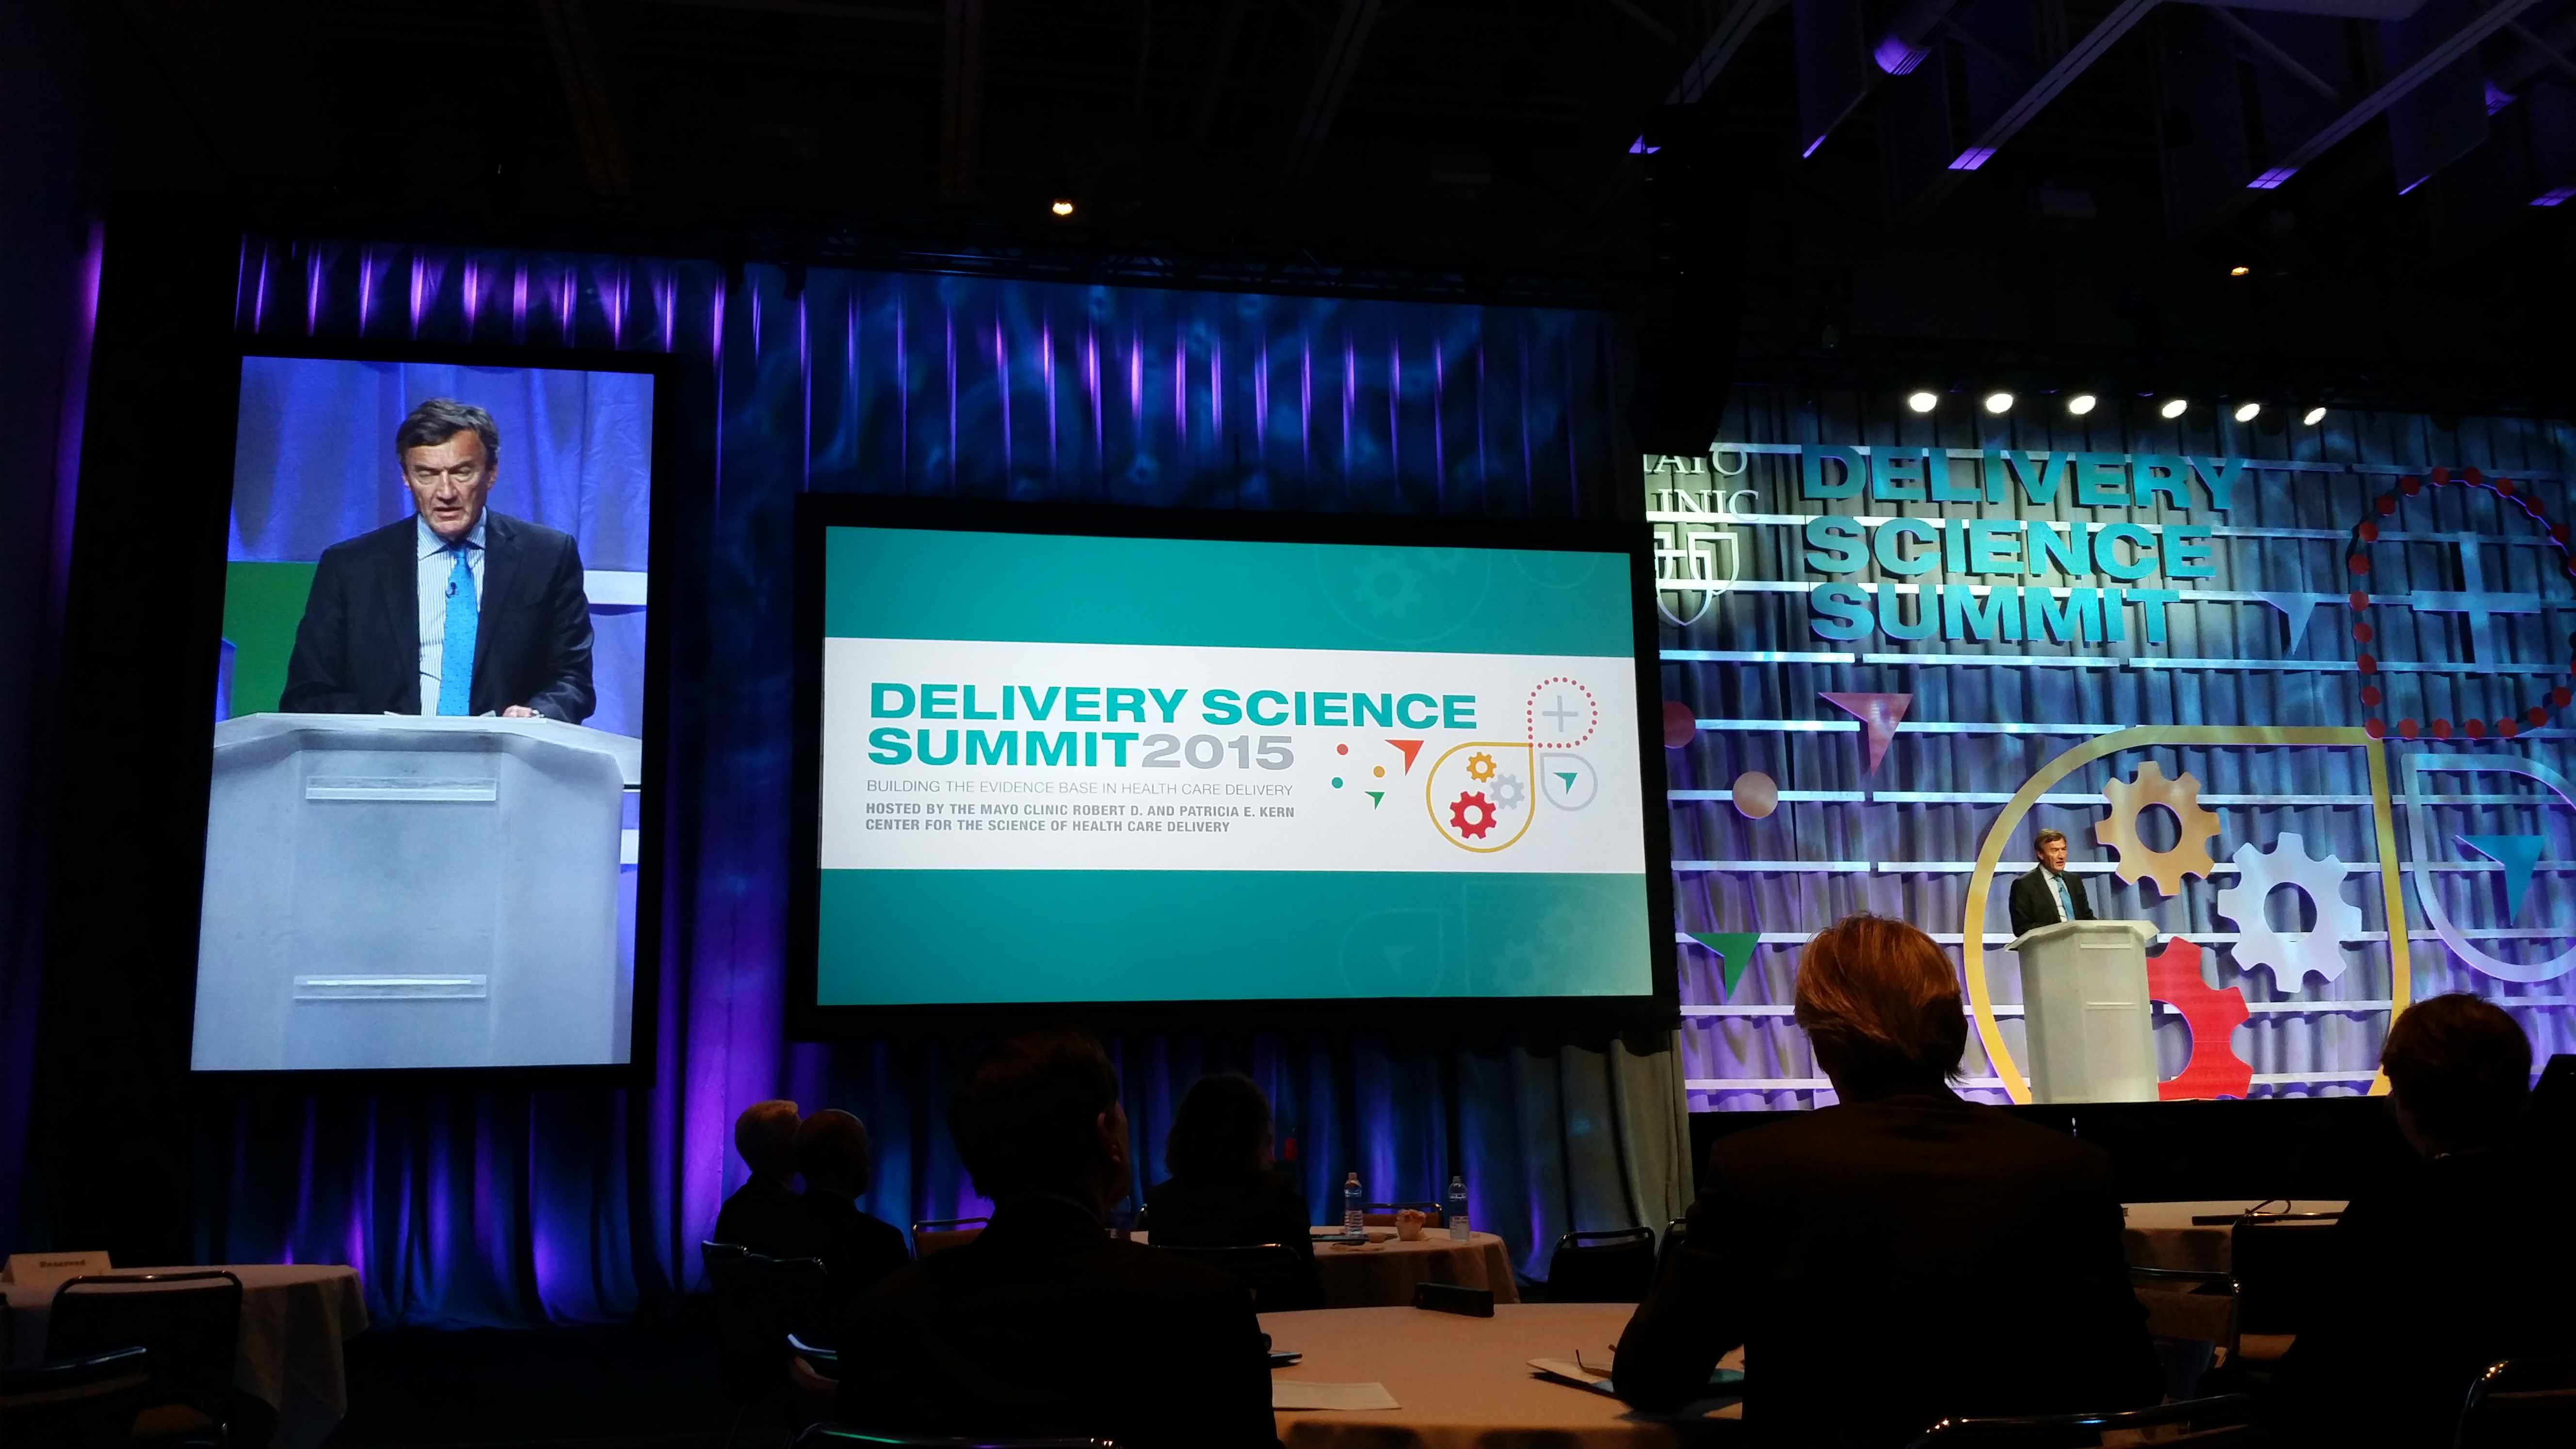 Dr. John Noseworthy addressing the Delivery Science Summit 2015, Center for the Science of Health Care Delivery